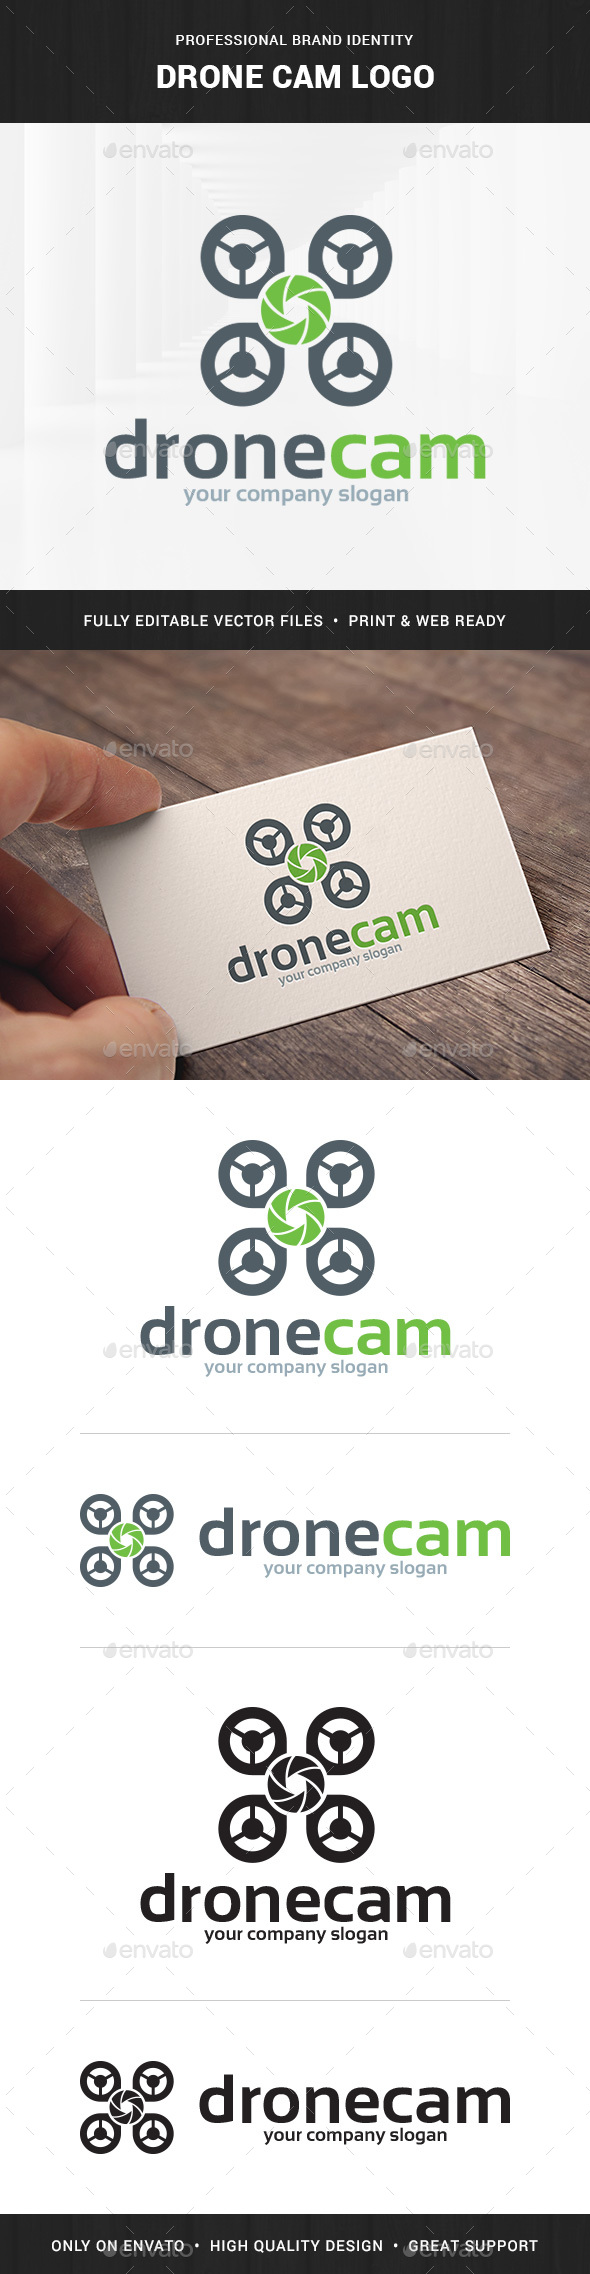 Drone Cam Logo Template - Objects Logo Templates